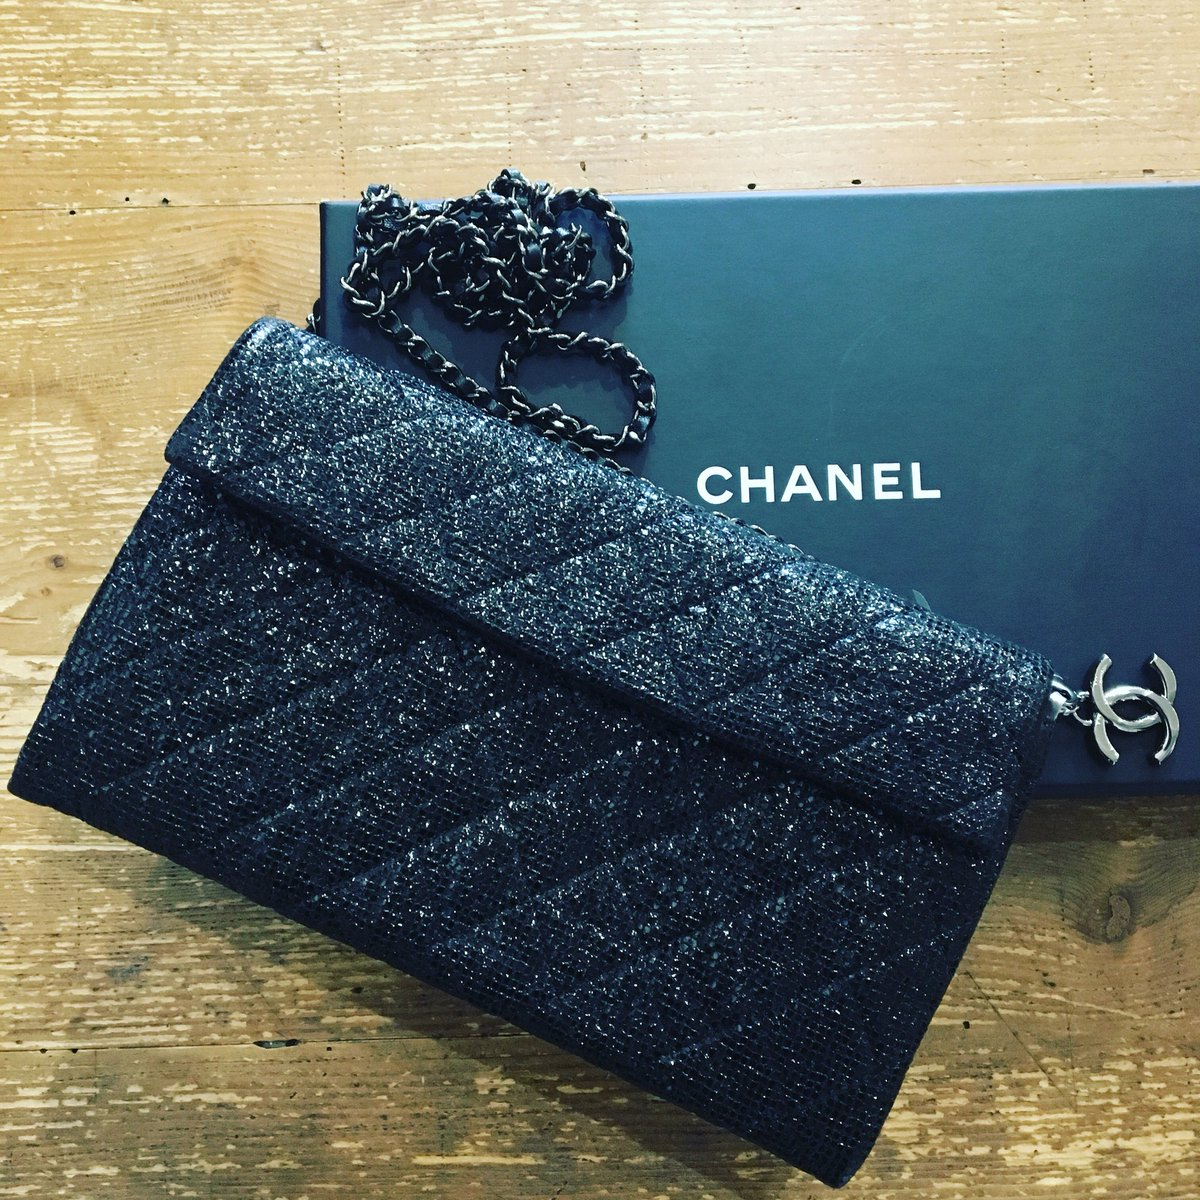 d51ef3349722e6 #chanelclutch hashtag on Twitter